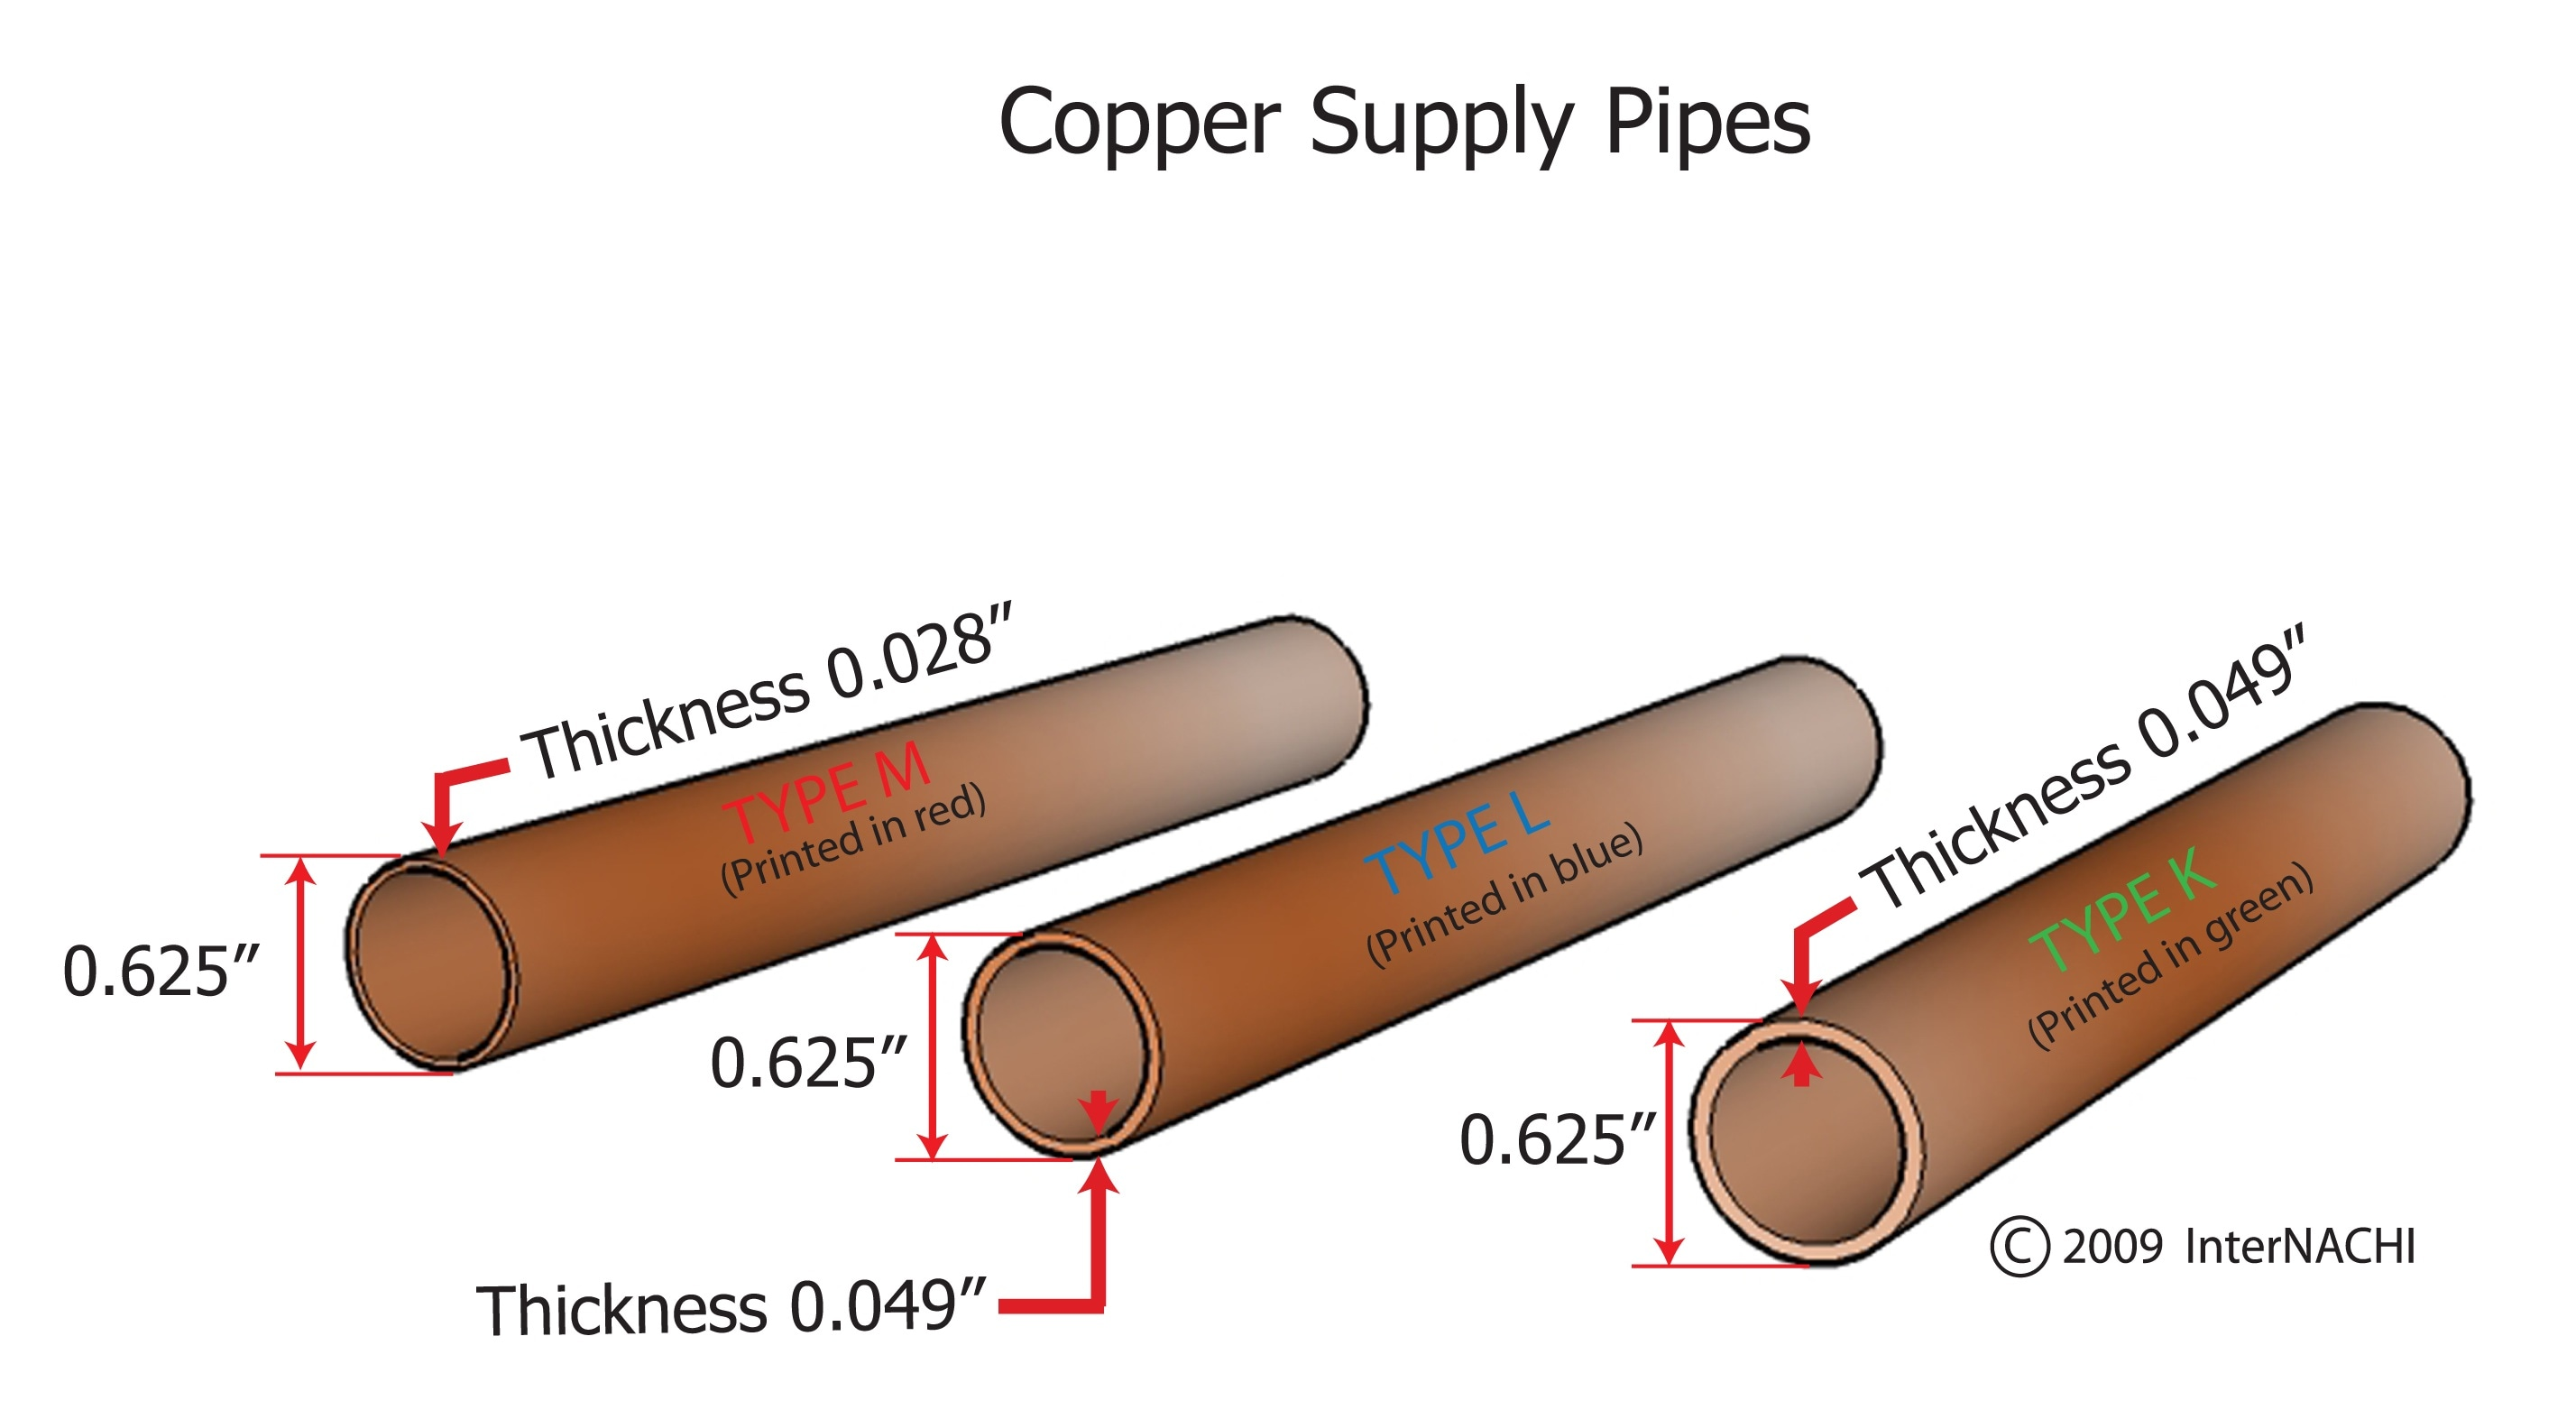 Copper supply pipes.